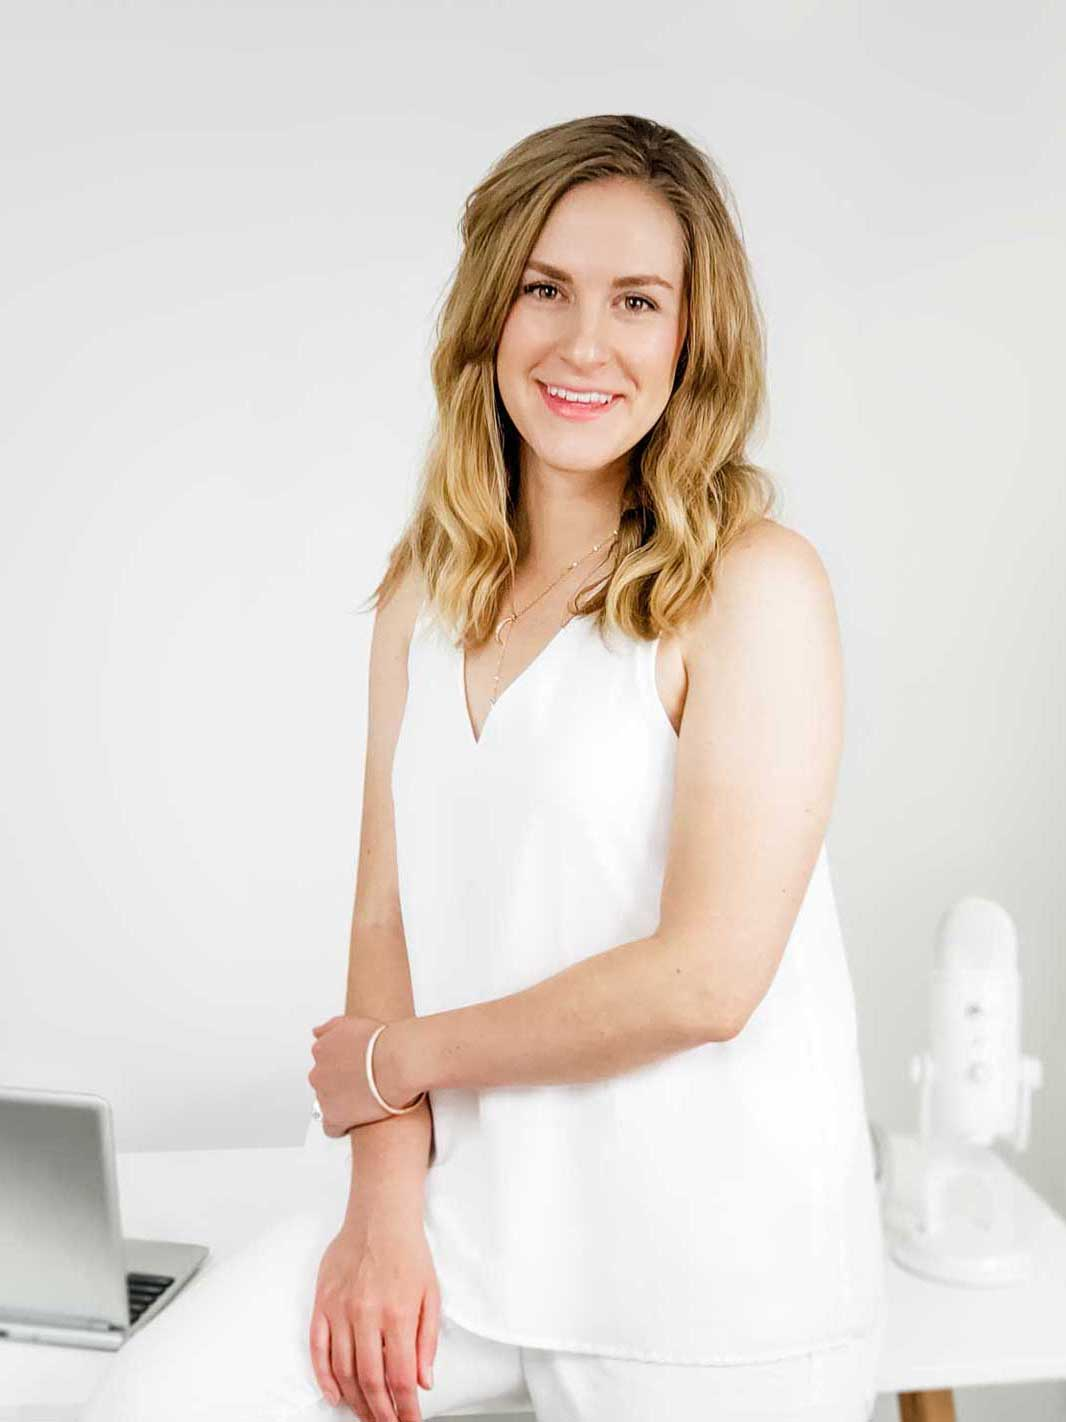 Erin Flynn dressed all in white--she'd never keep this outfit clean in real life!